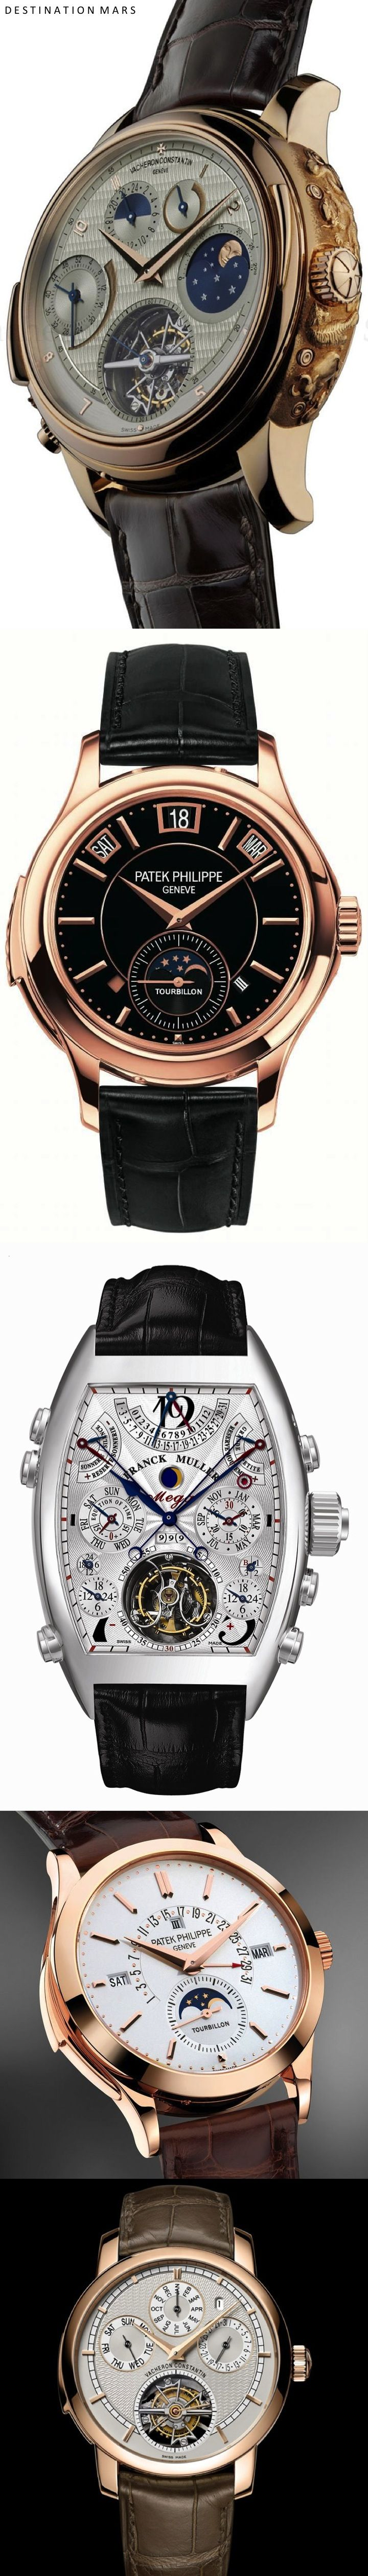 Tourbillon Watches